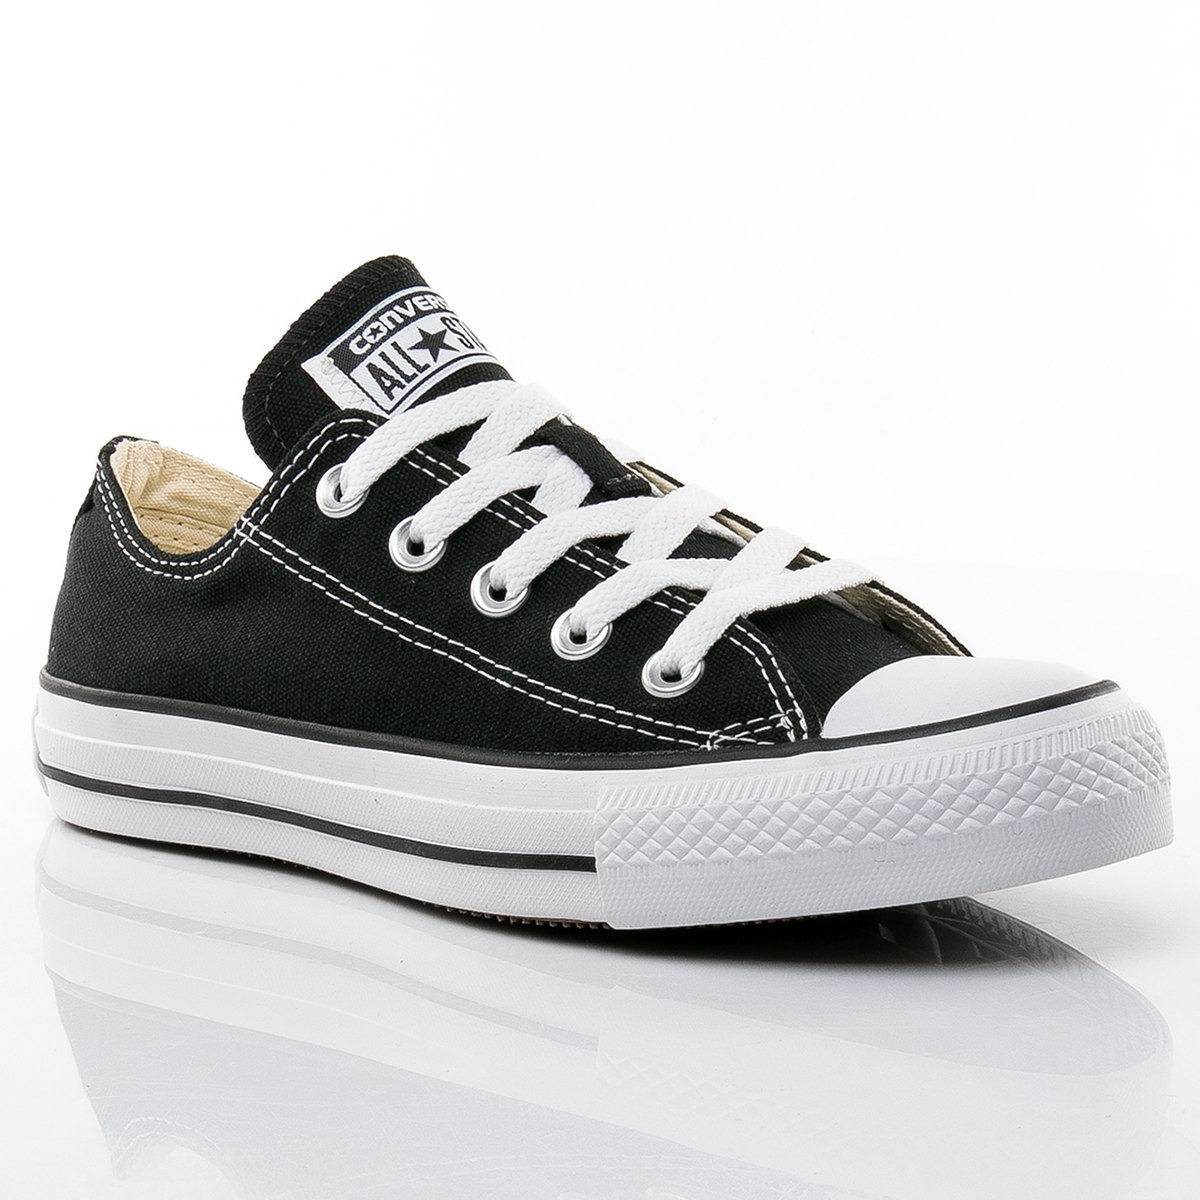 0a25e2e9861 ... free shipping zapatillas chuck taylor all star ox black converse sport  78 d6d00 87168